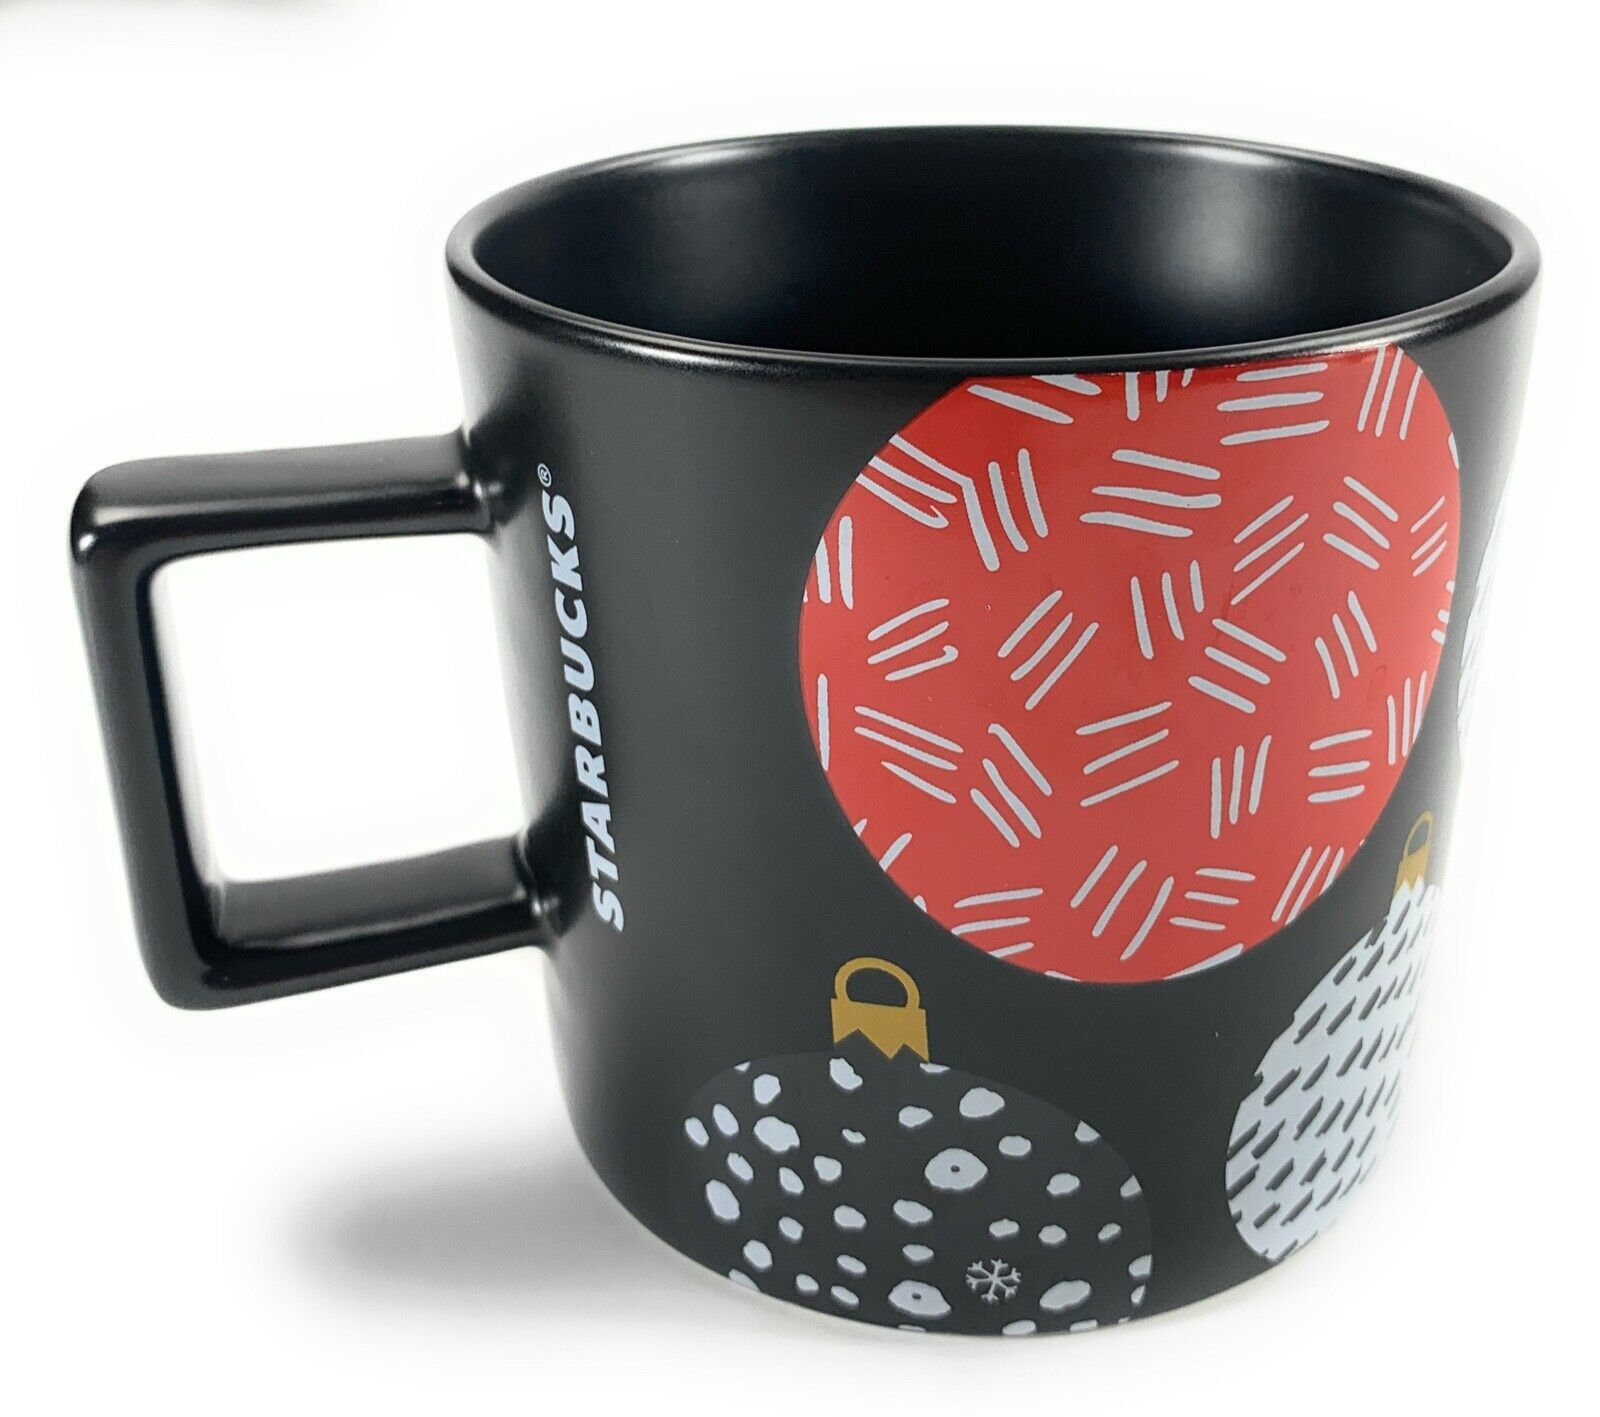 Starbucks Coffee Co. Christmas Ornament Black, Red, White 14 Oz. Cup Mug 2016 image 1